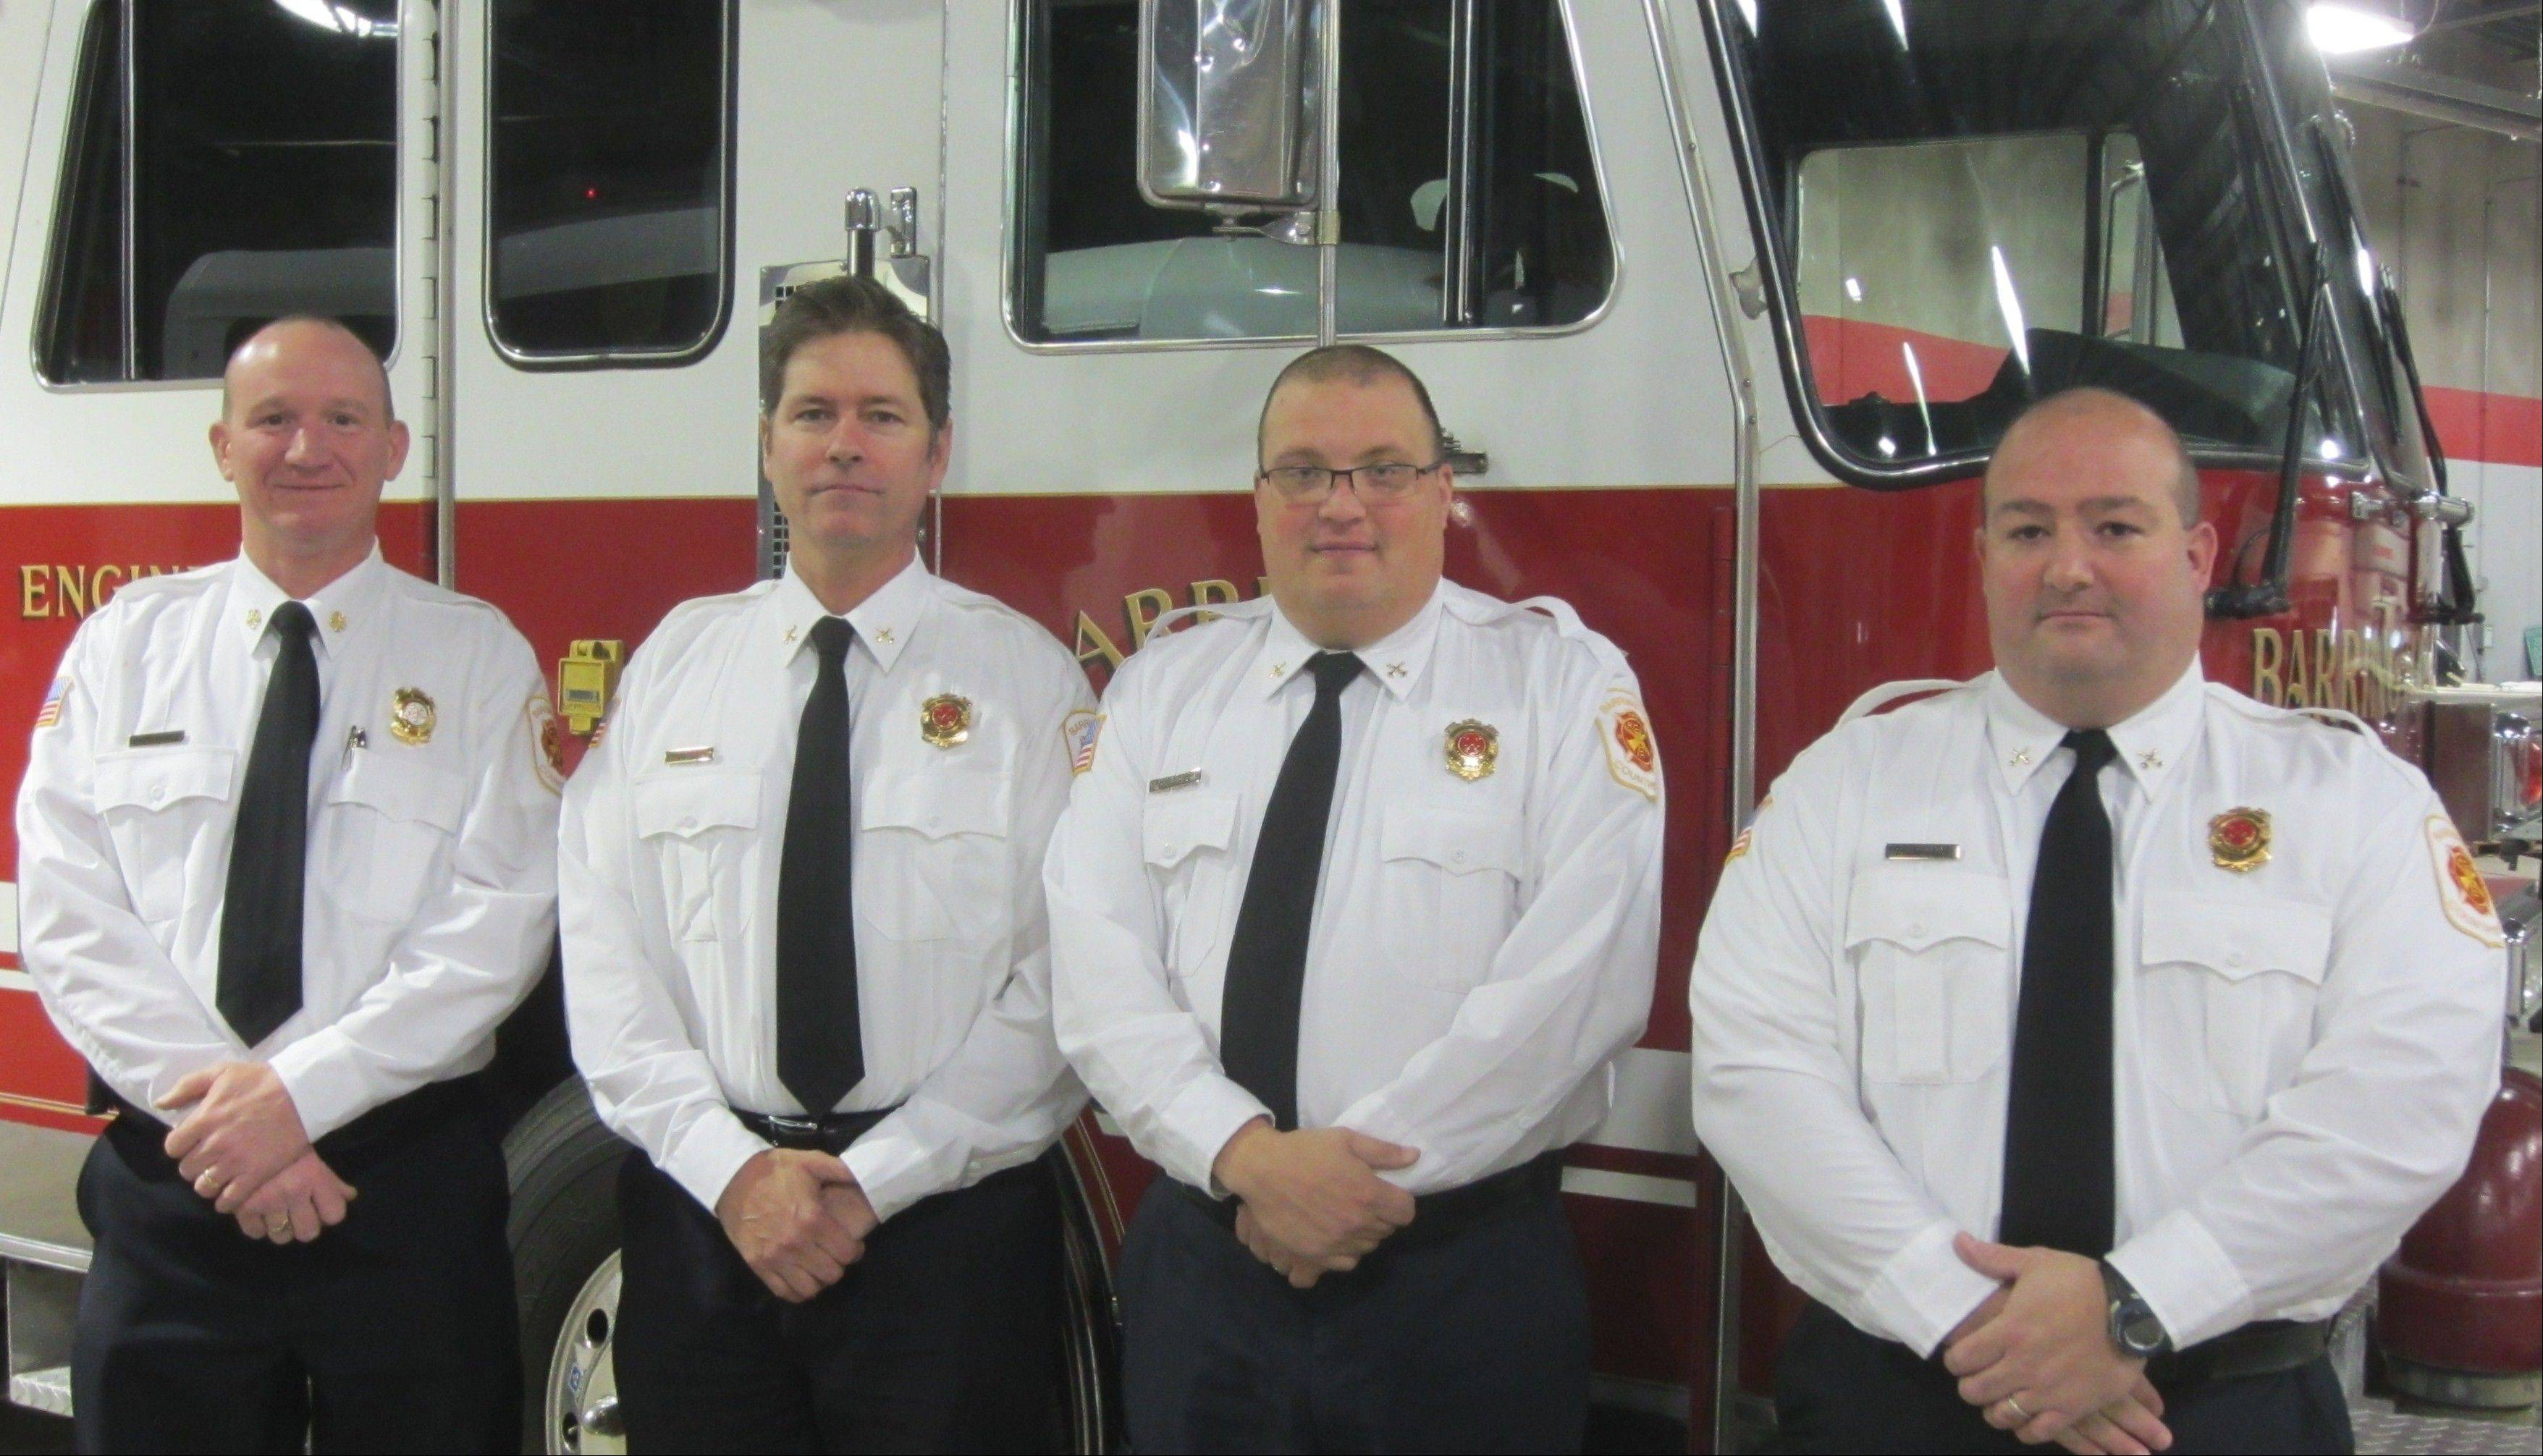 Barrington Countryside Fire Protection District Fire Chief Jeff Swanson, far left, was joined earlier this month by the appointment of, from left to right, battalion chiefs Ron Eilken, Scott Motisi and Jeff Tress.